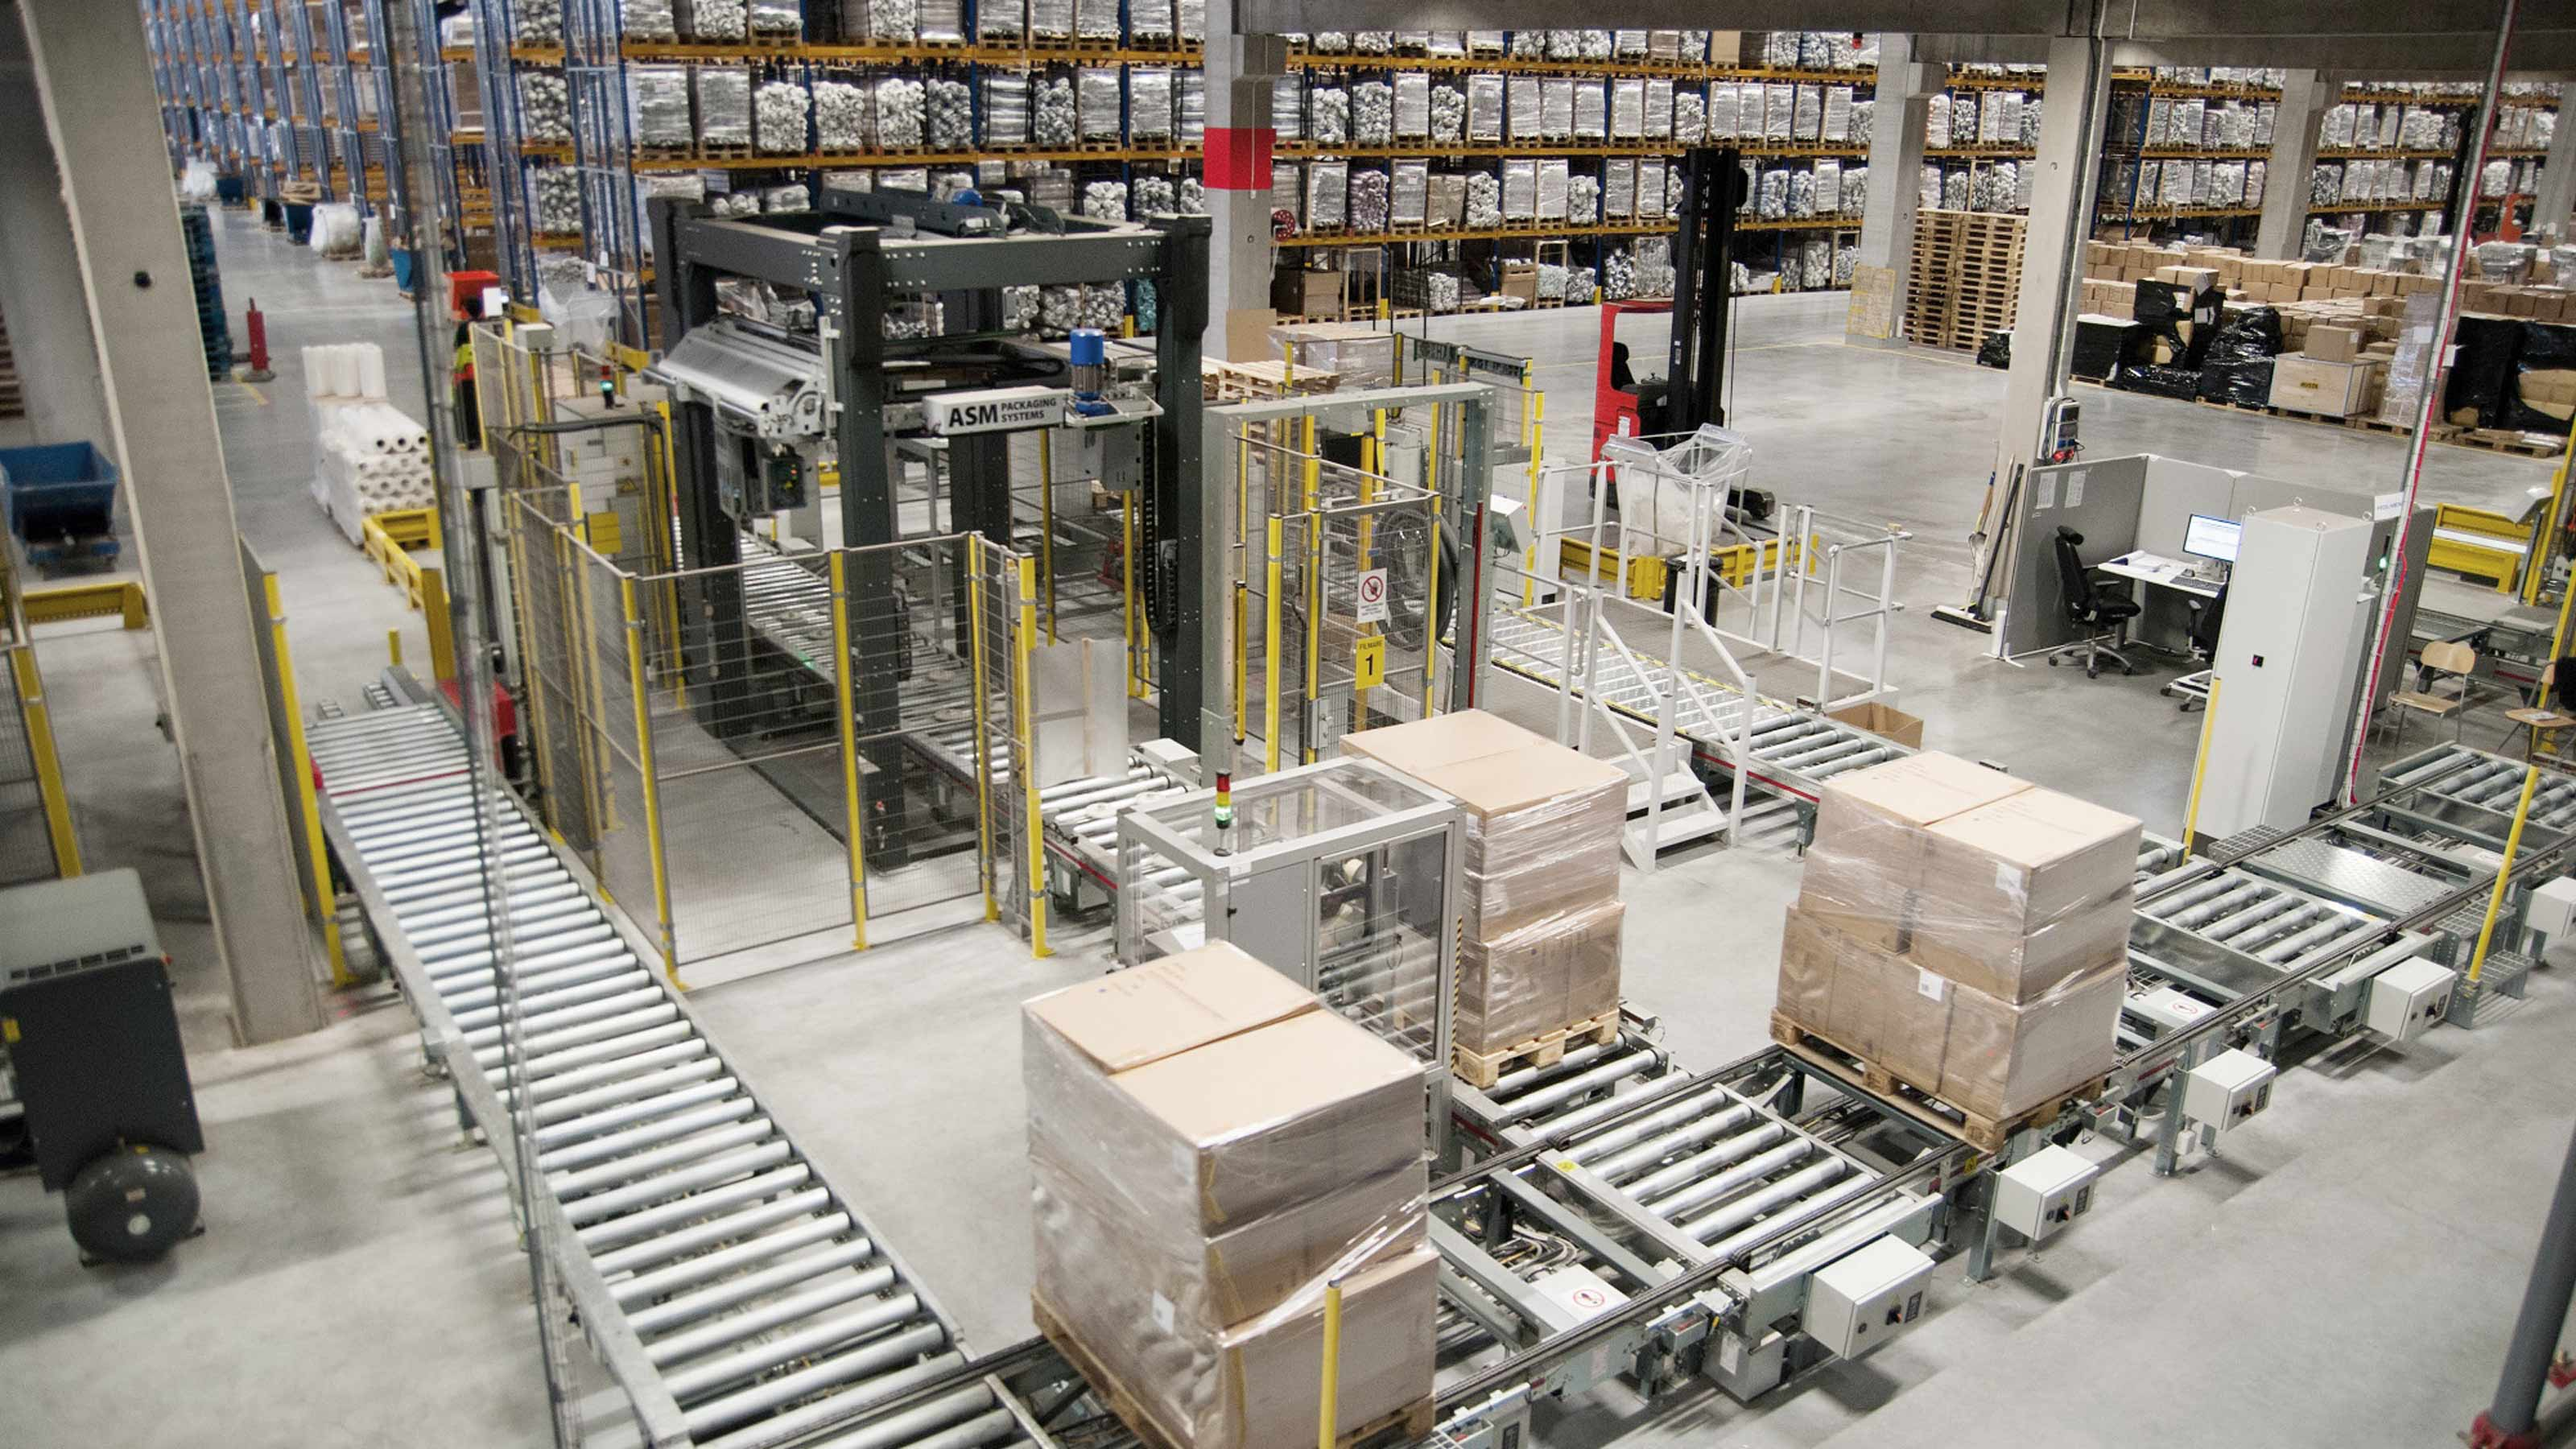 Rusta automates central distribution center for growth